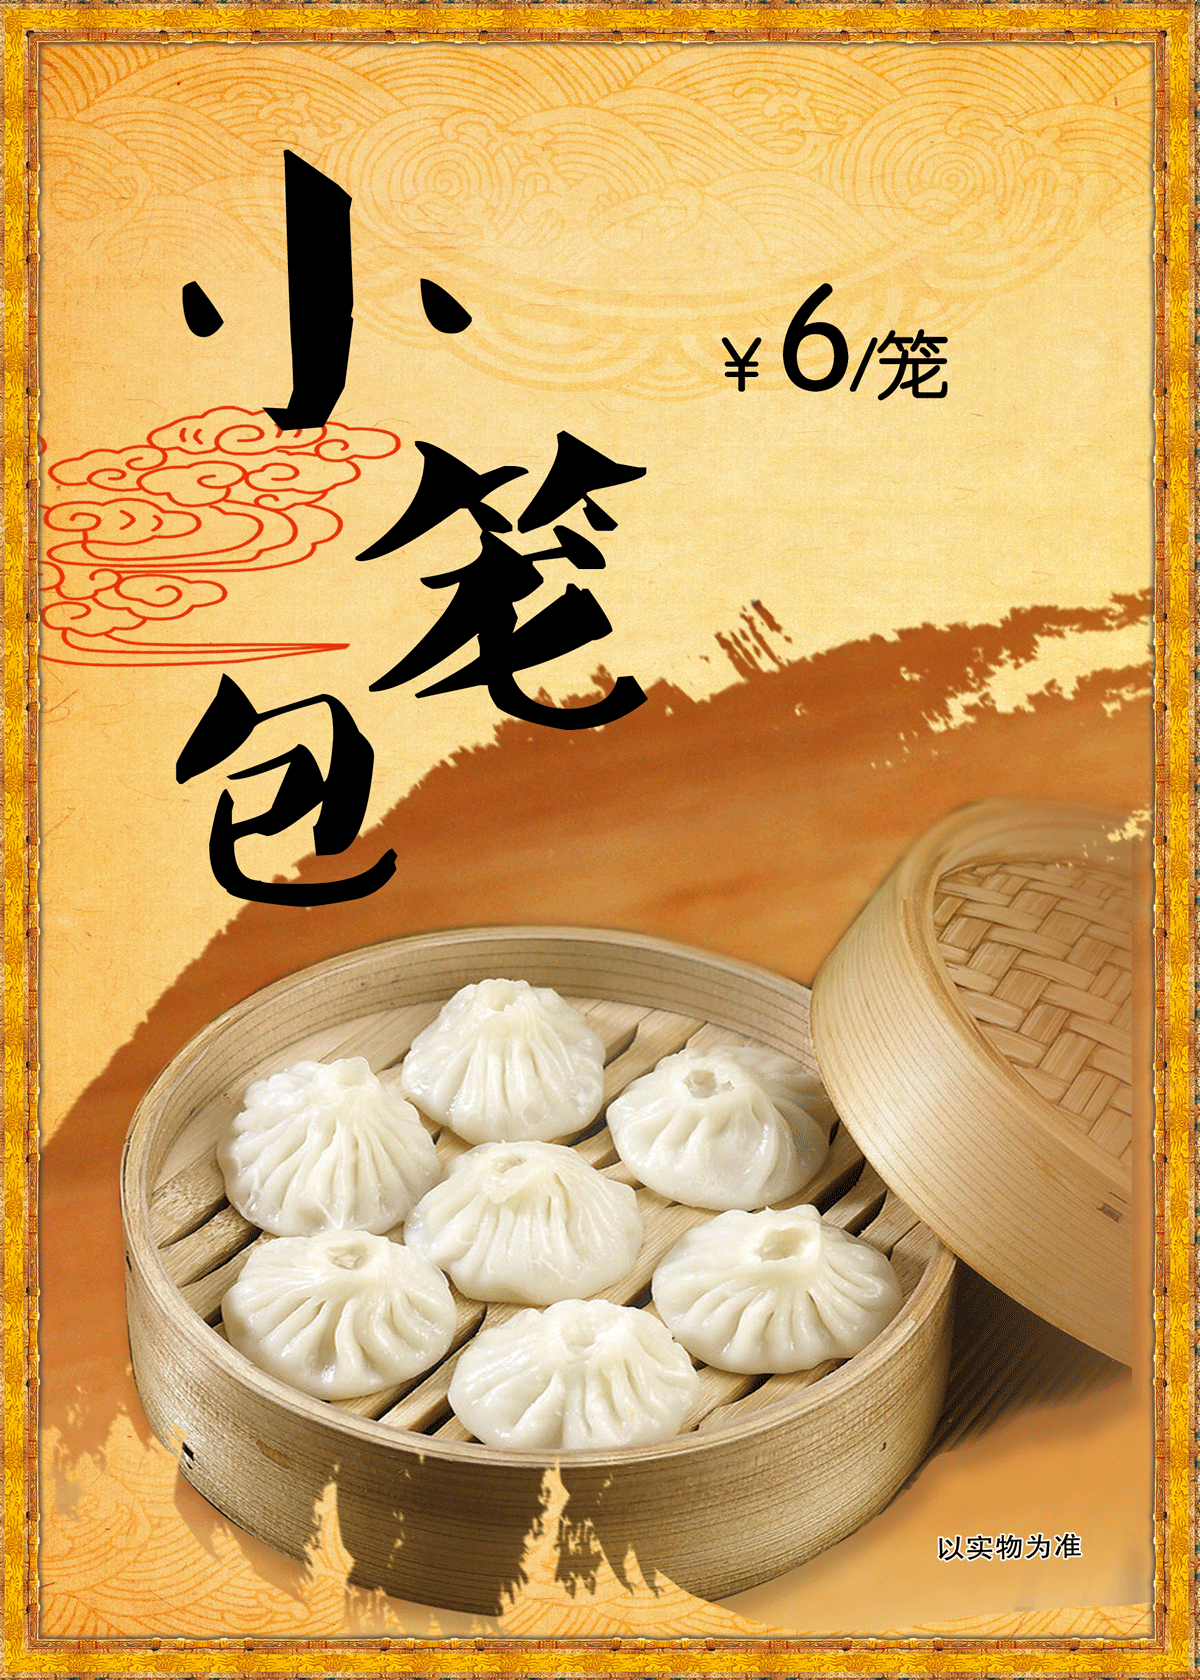 chinesefontdesign.com 2017 09 11 12 17 05 819347 Chinese food  Small steamed bun  PSD File Free Download Chinese food PSD